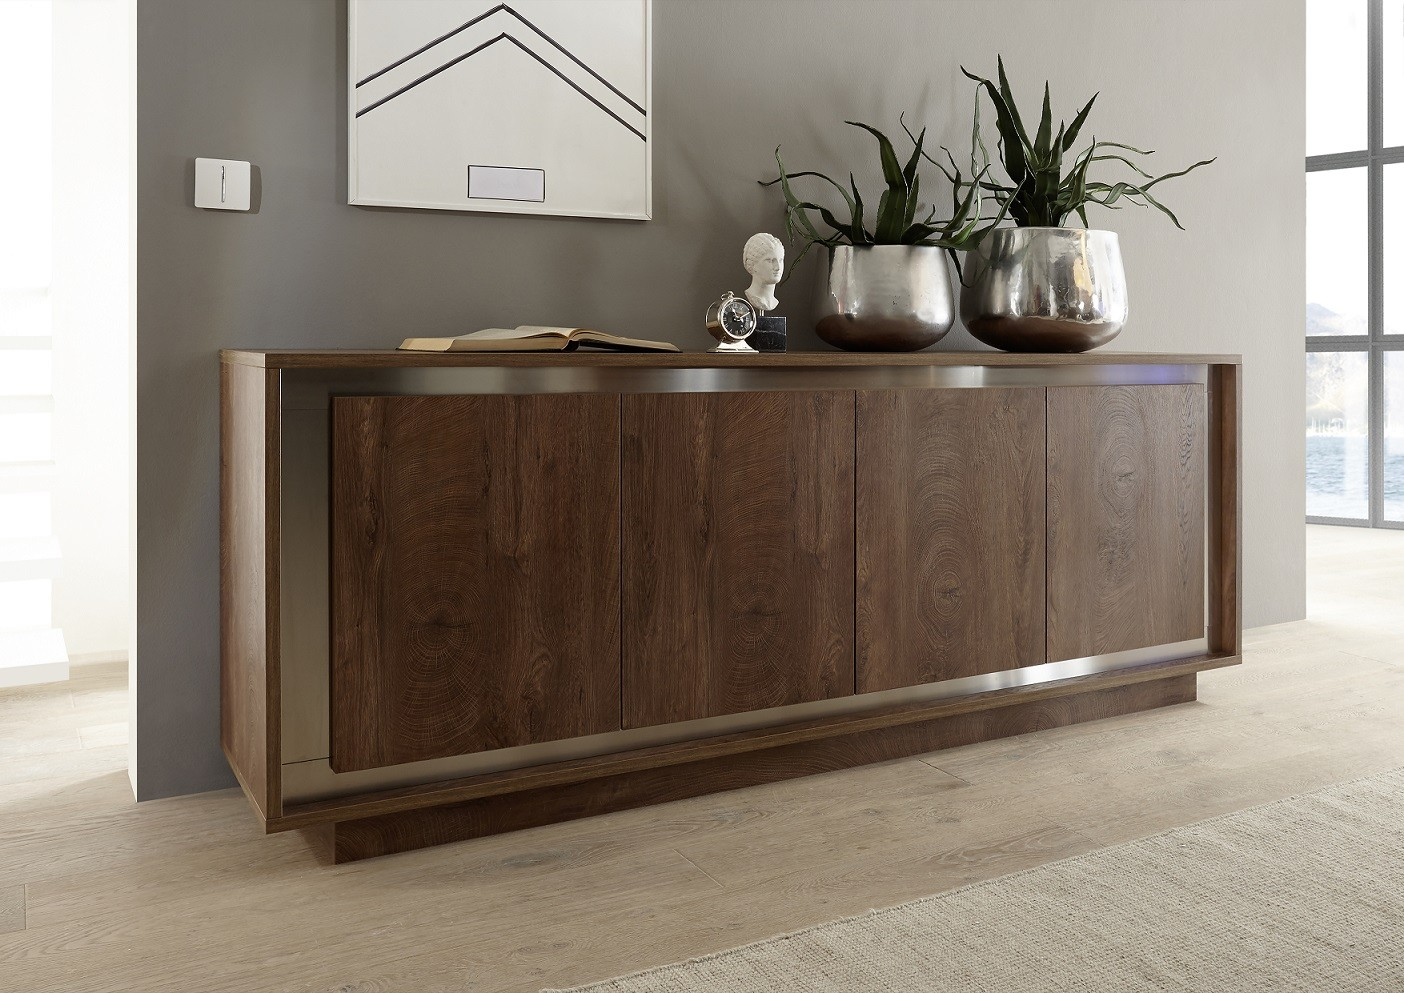 Amber Modern Sideboard In Oak Cognac Finish With Inlays